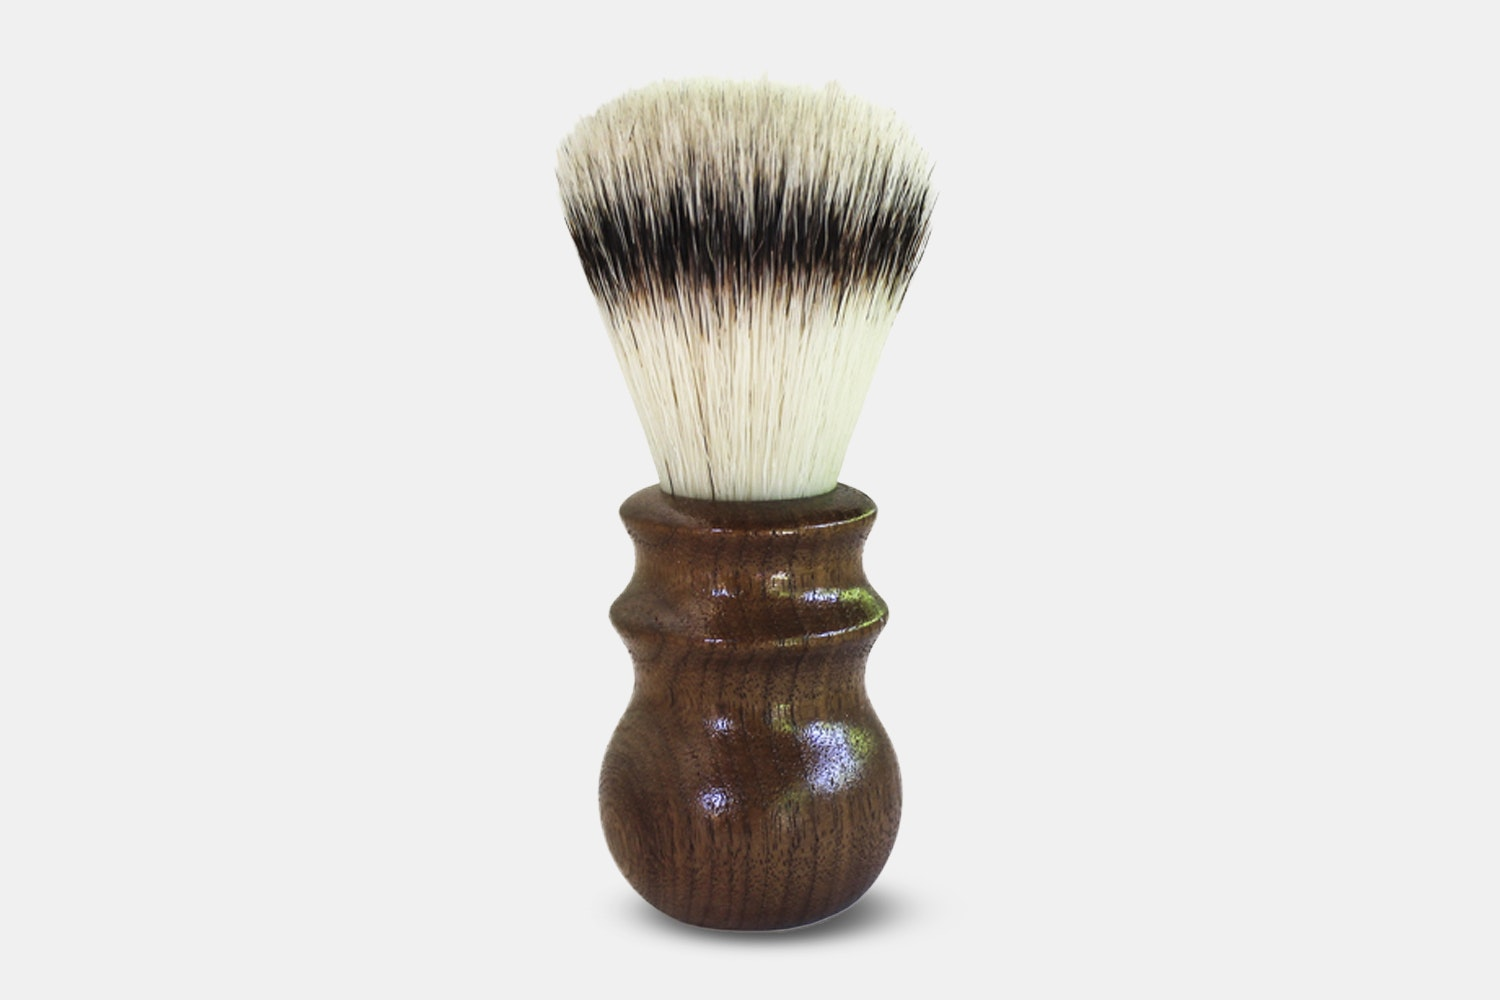 The 1906 Gents Shaving Brushes